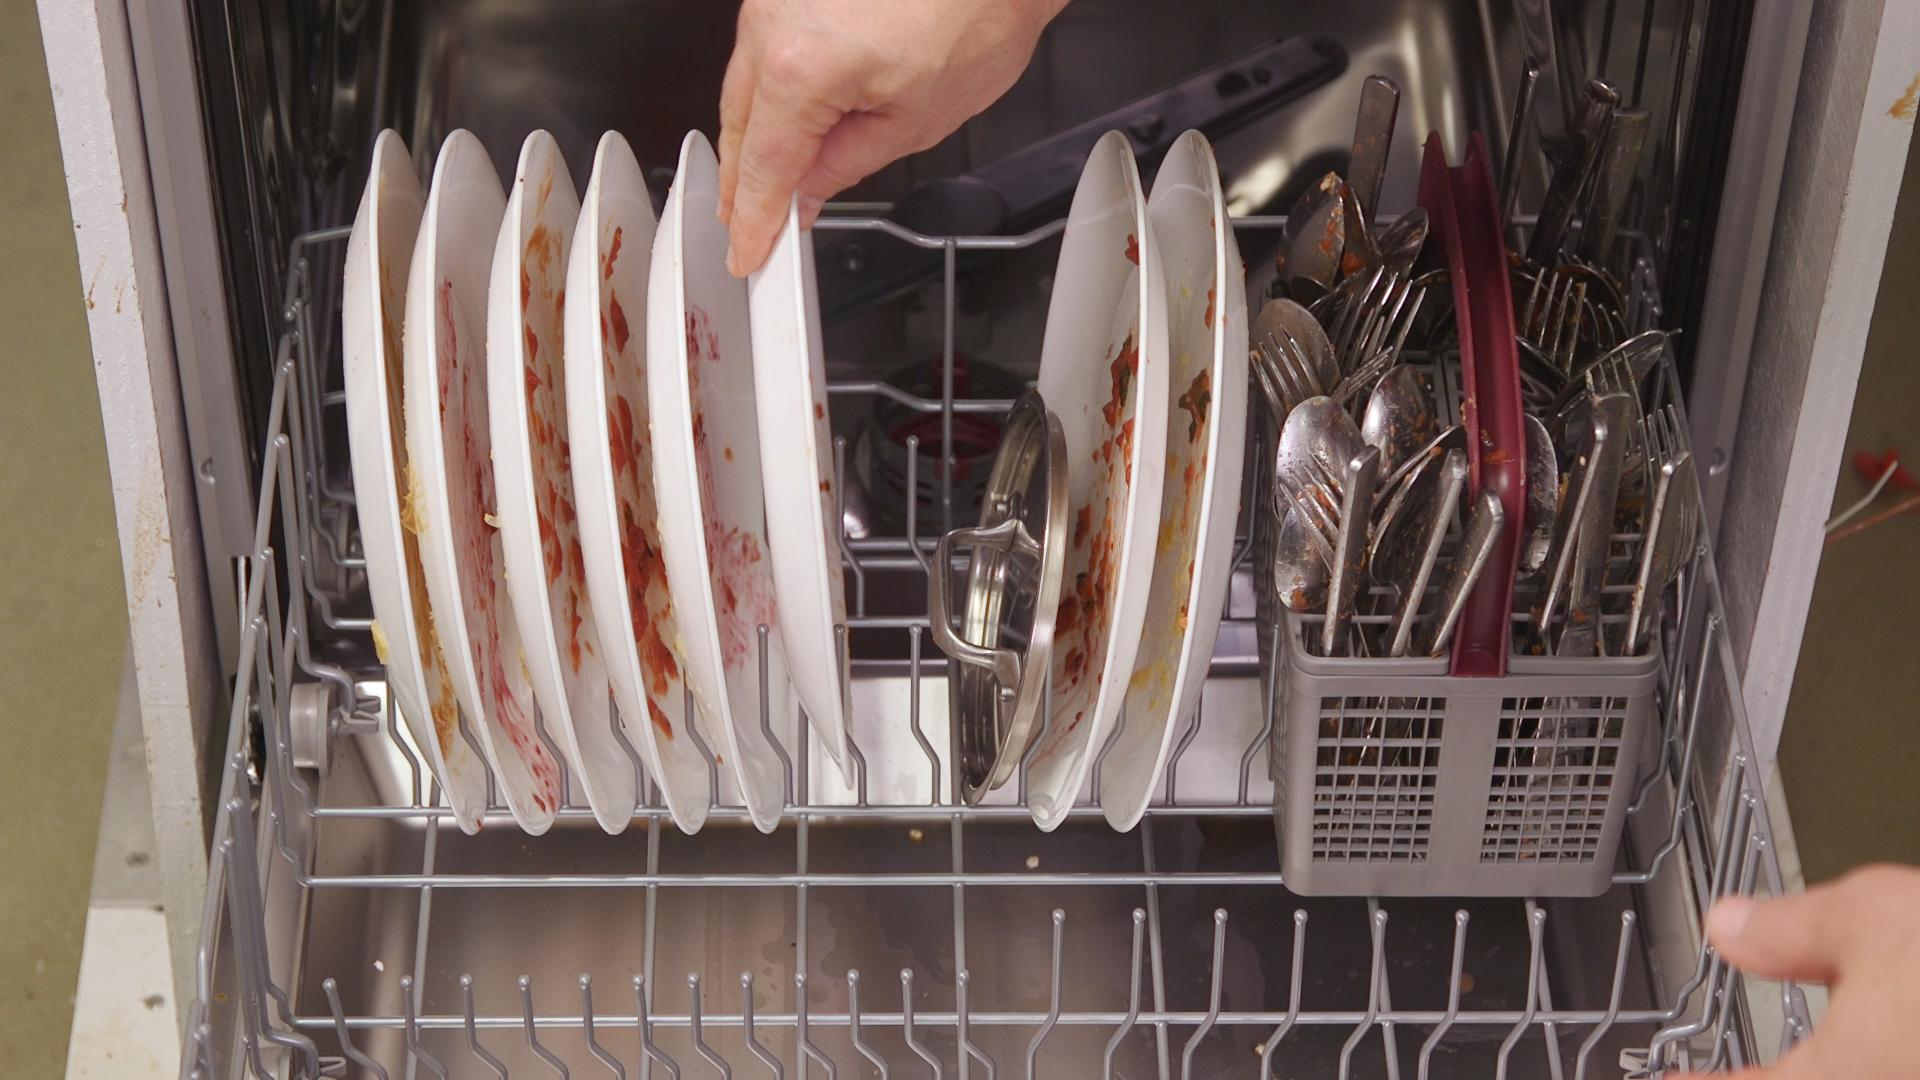 How to load the dishes in the dishwasher: how to use the dishwasher 57